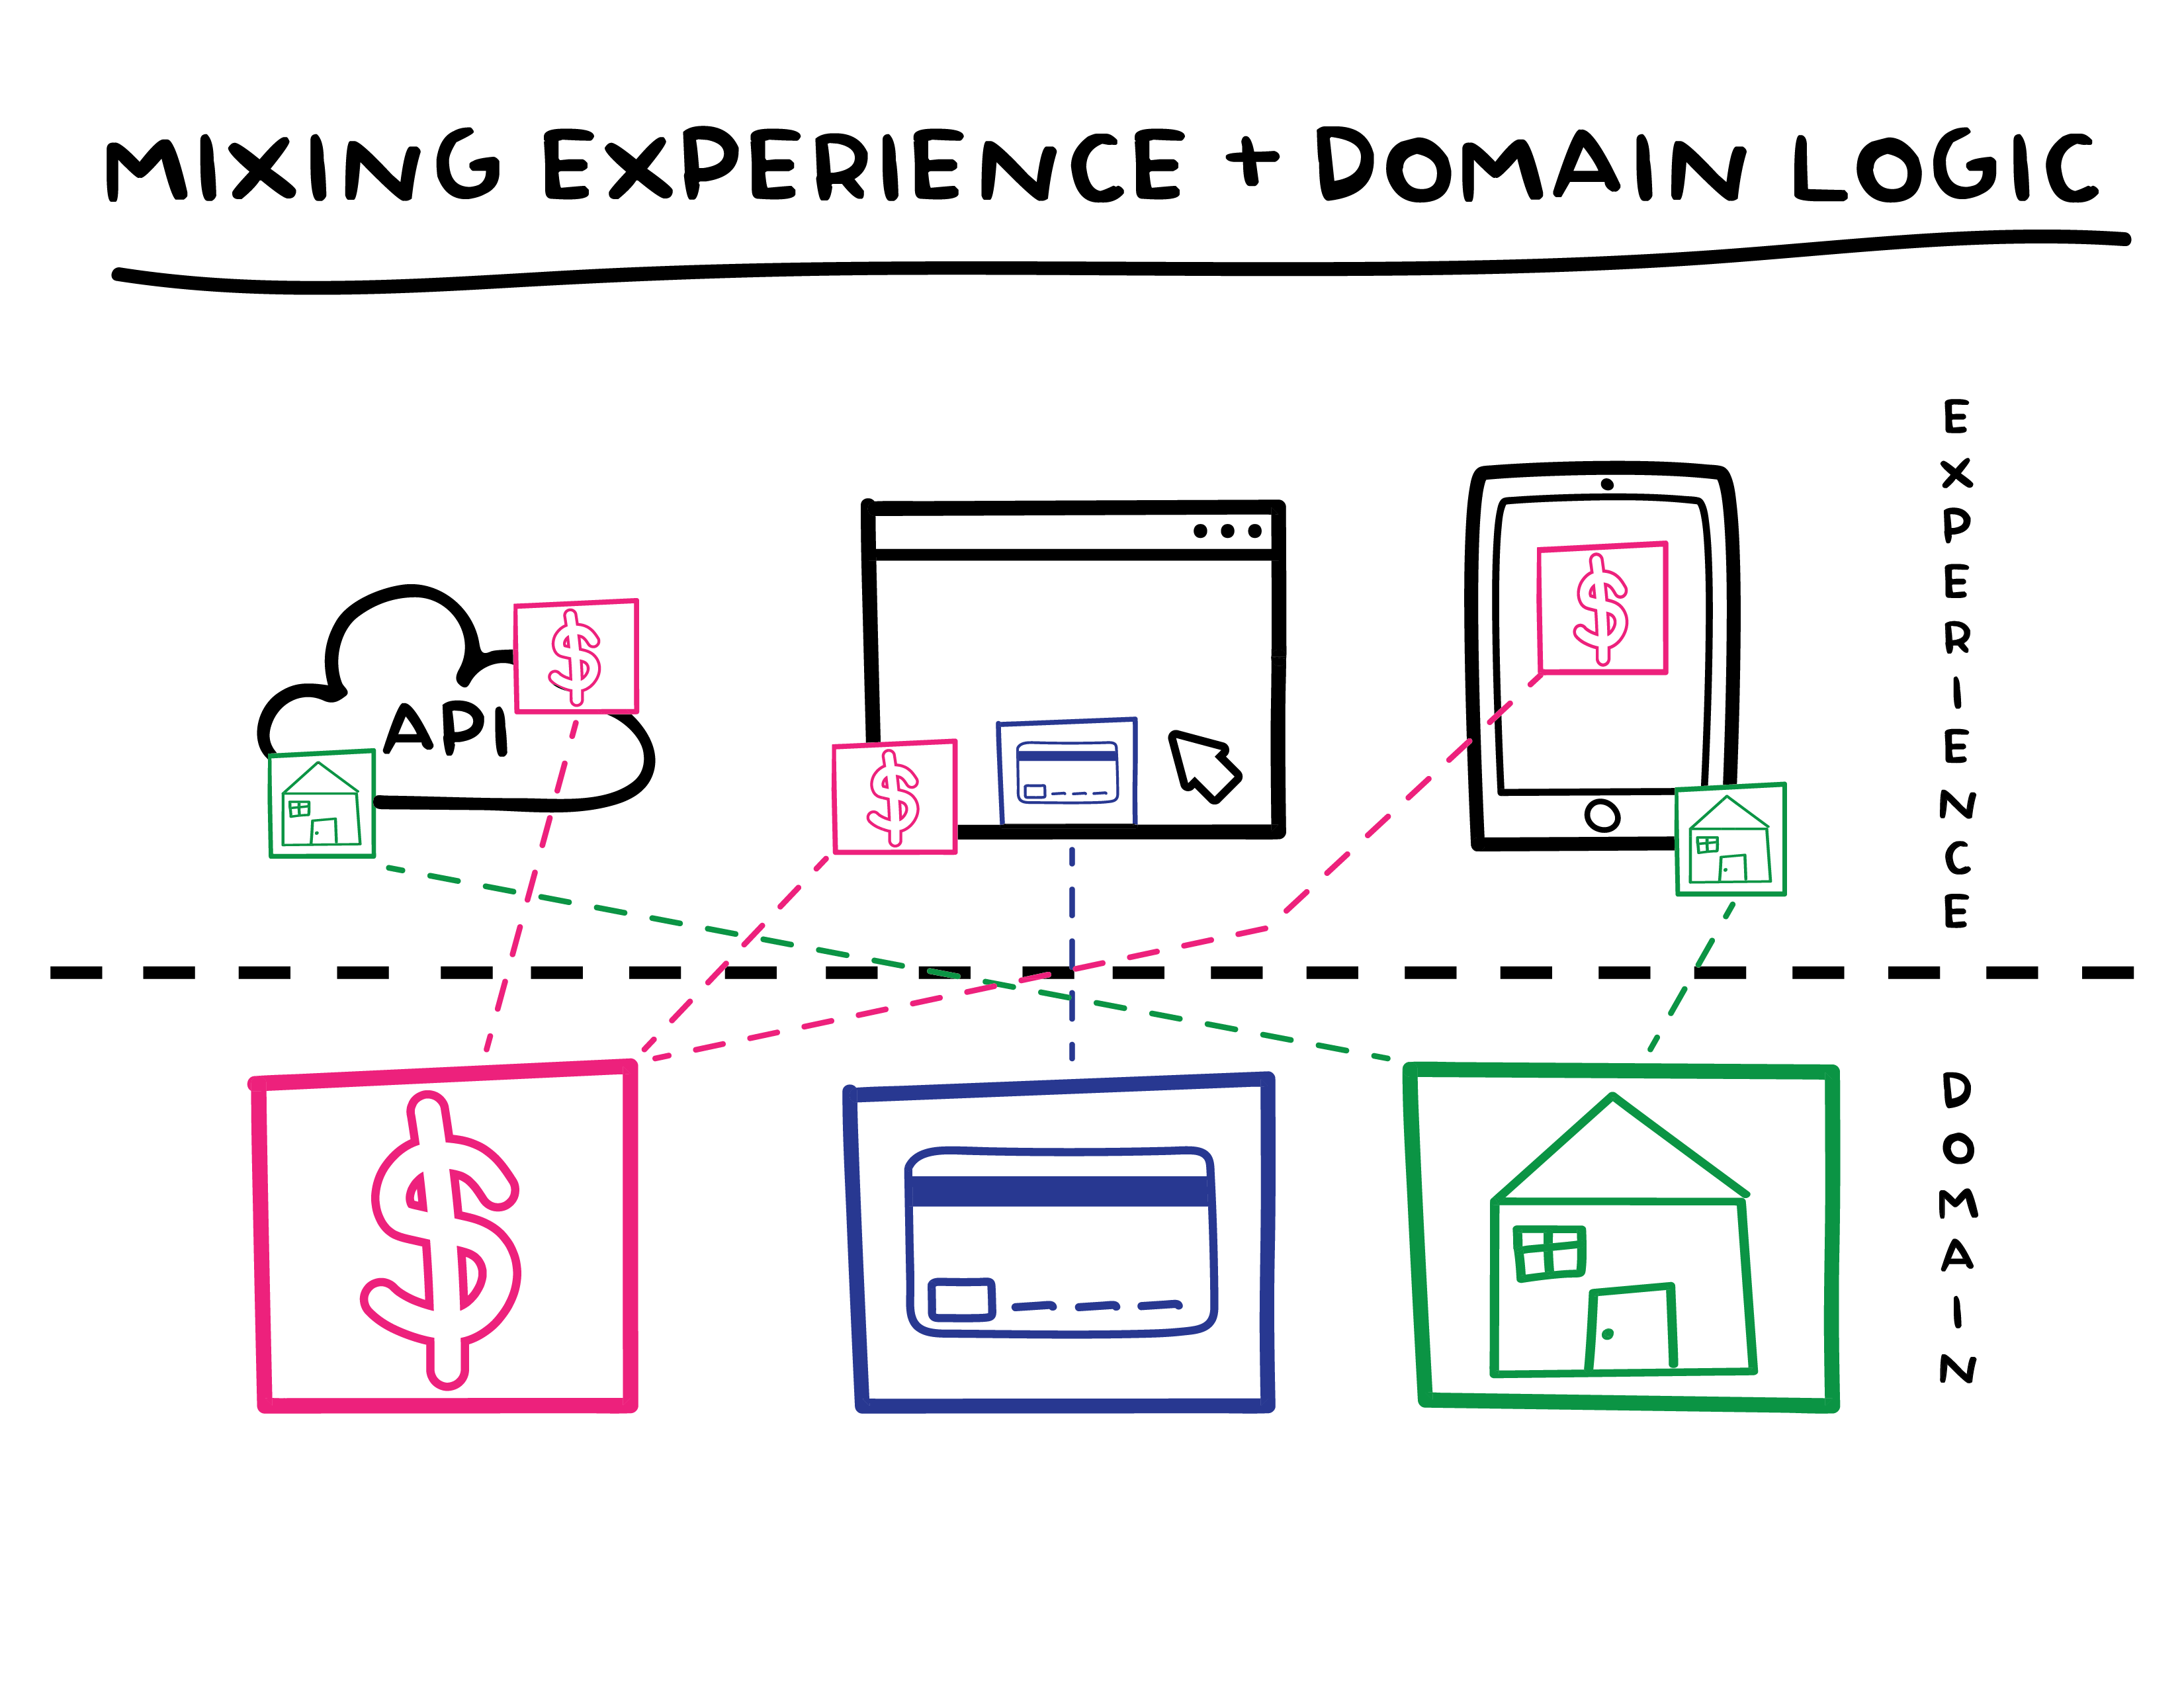 API, Web and Mobile experiences shown with domain logic of pricing, payment and properties in the experience layer.